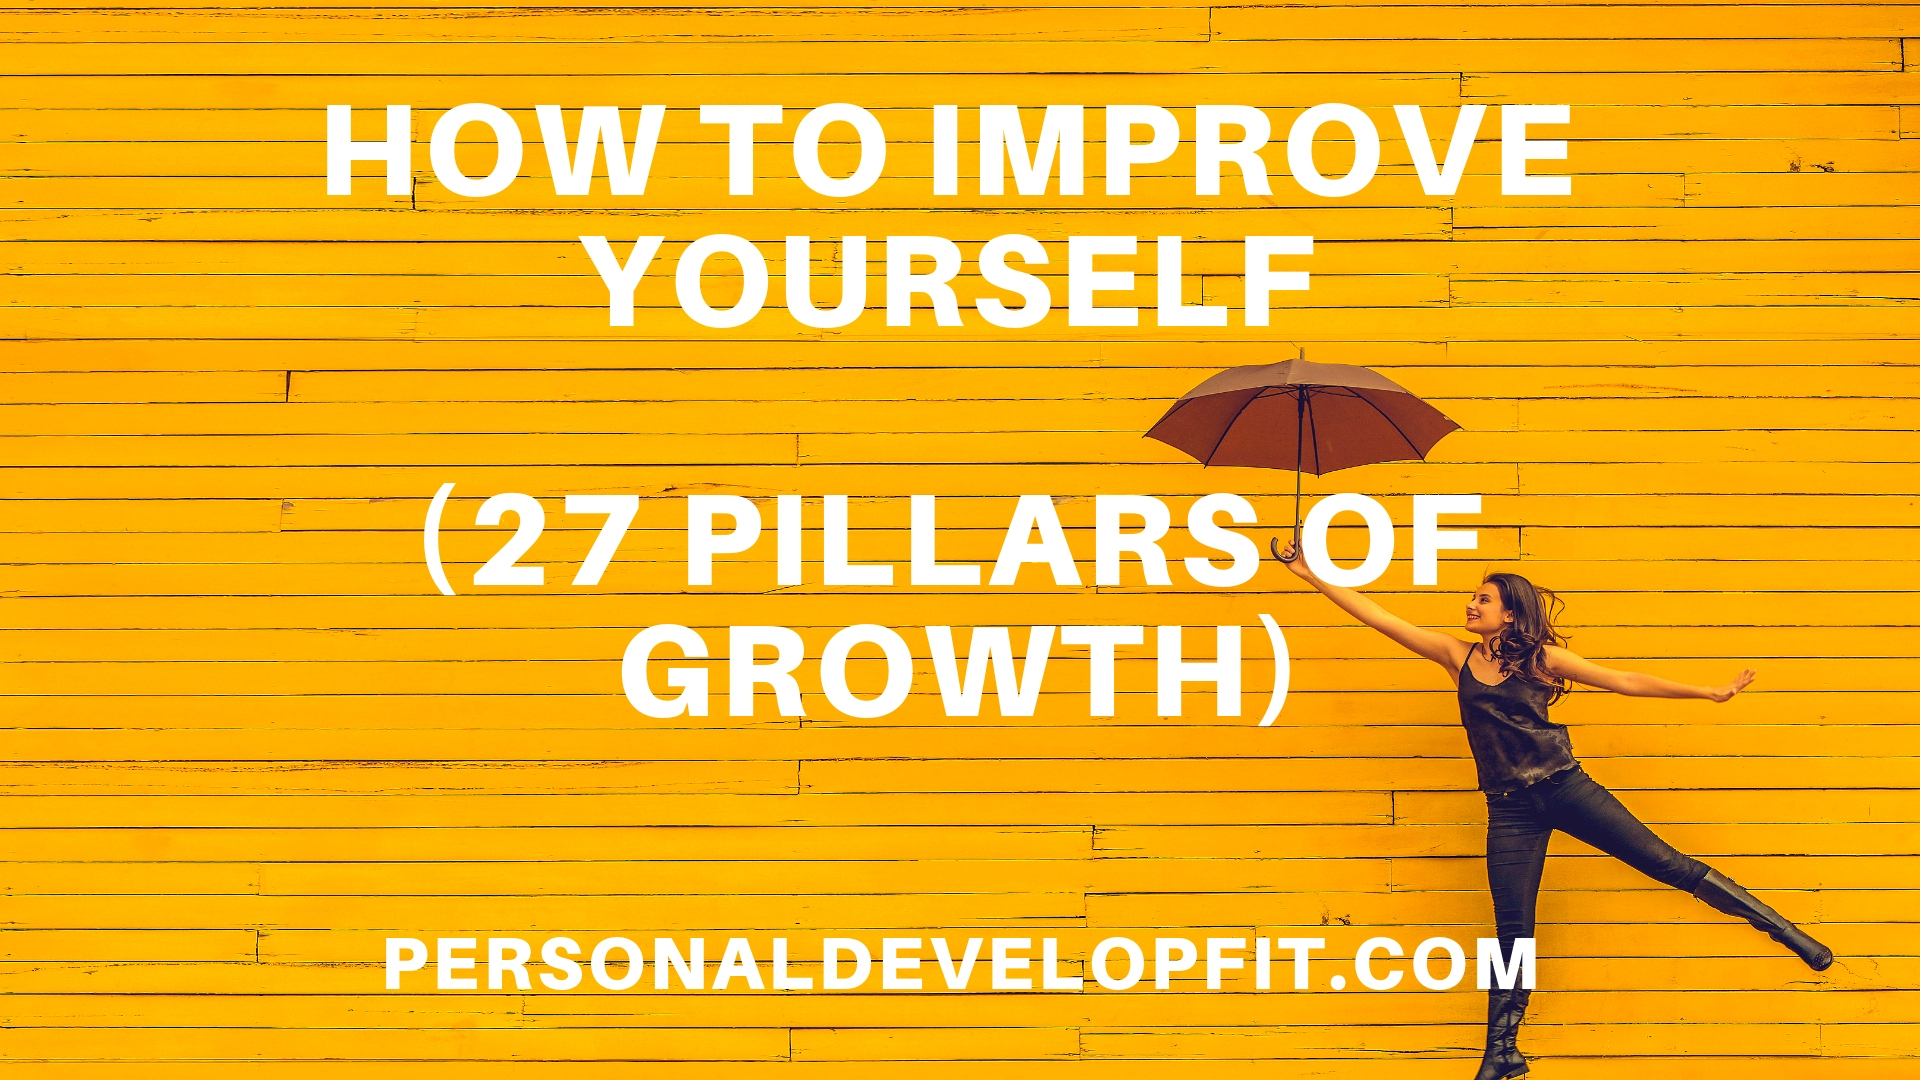 How To Improve Yourself 27 Pillars Of Growth